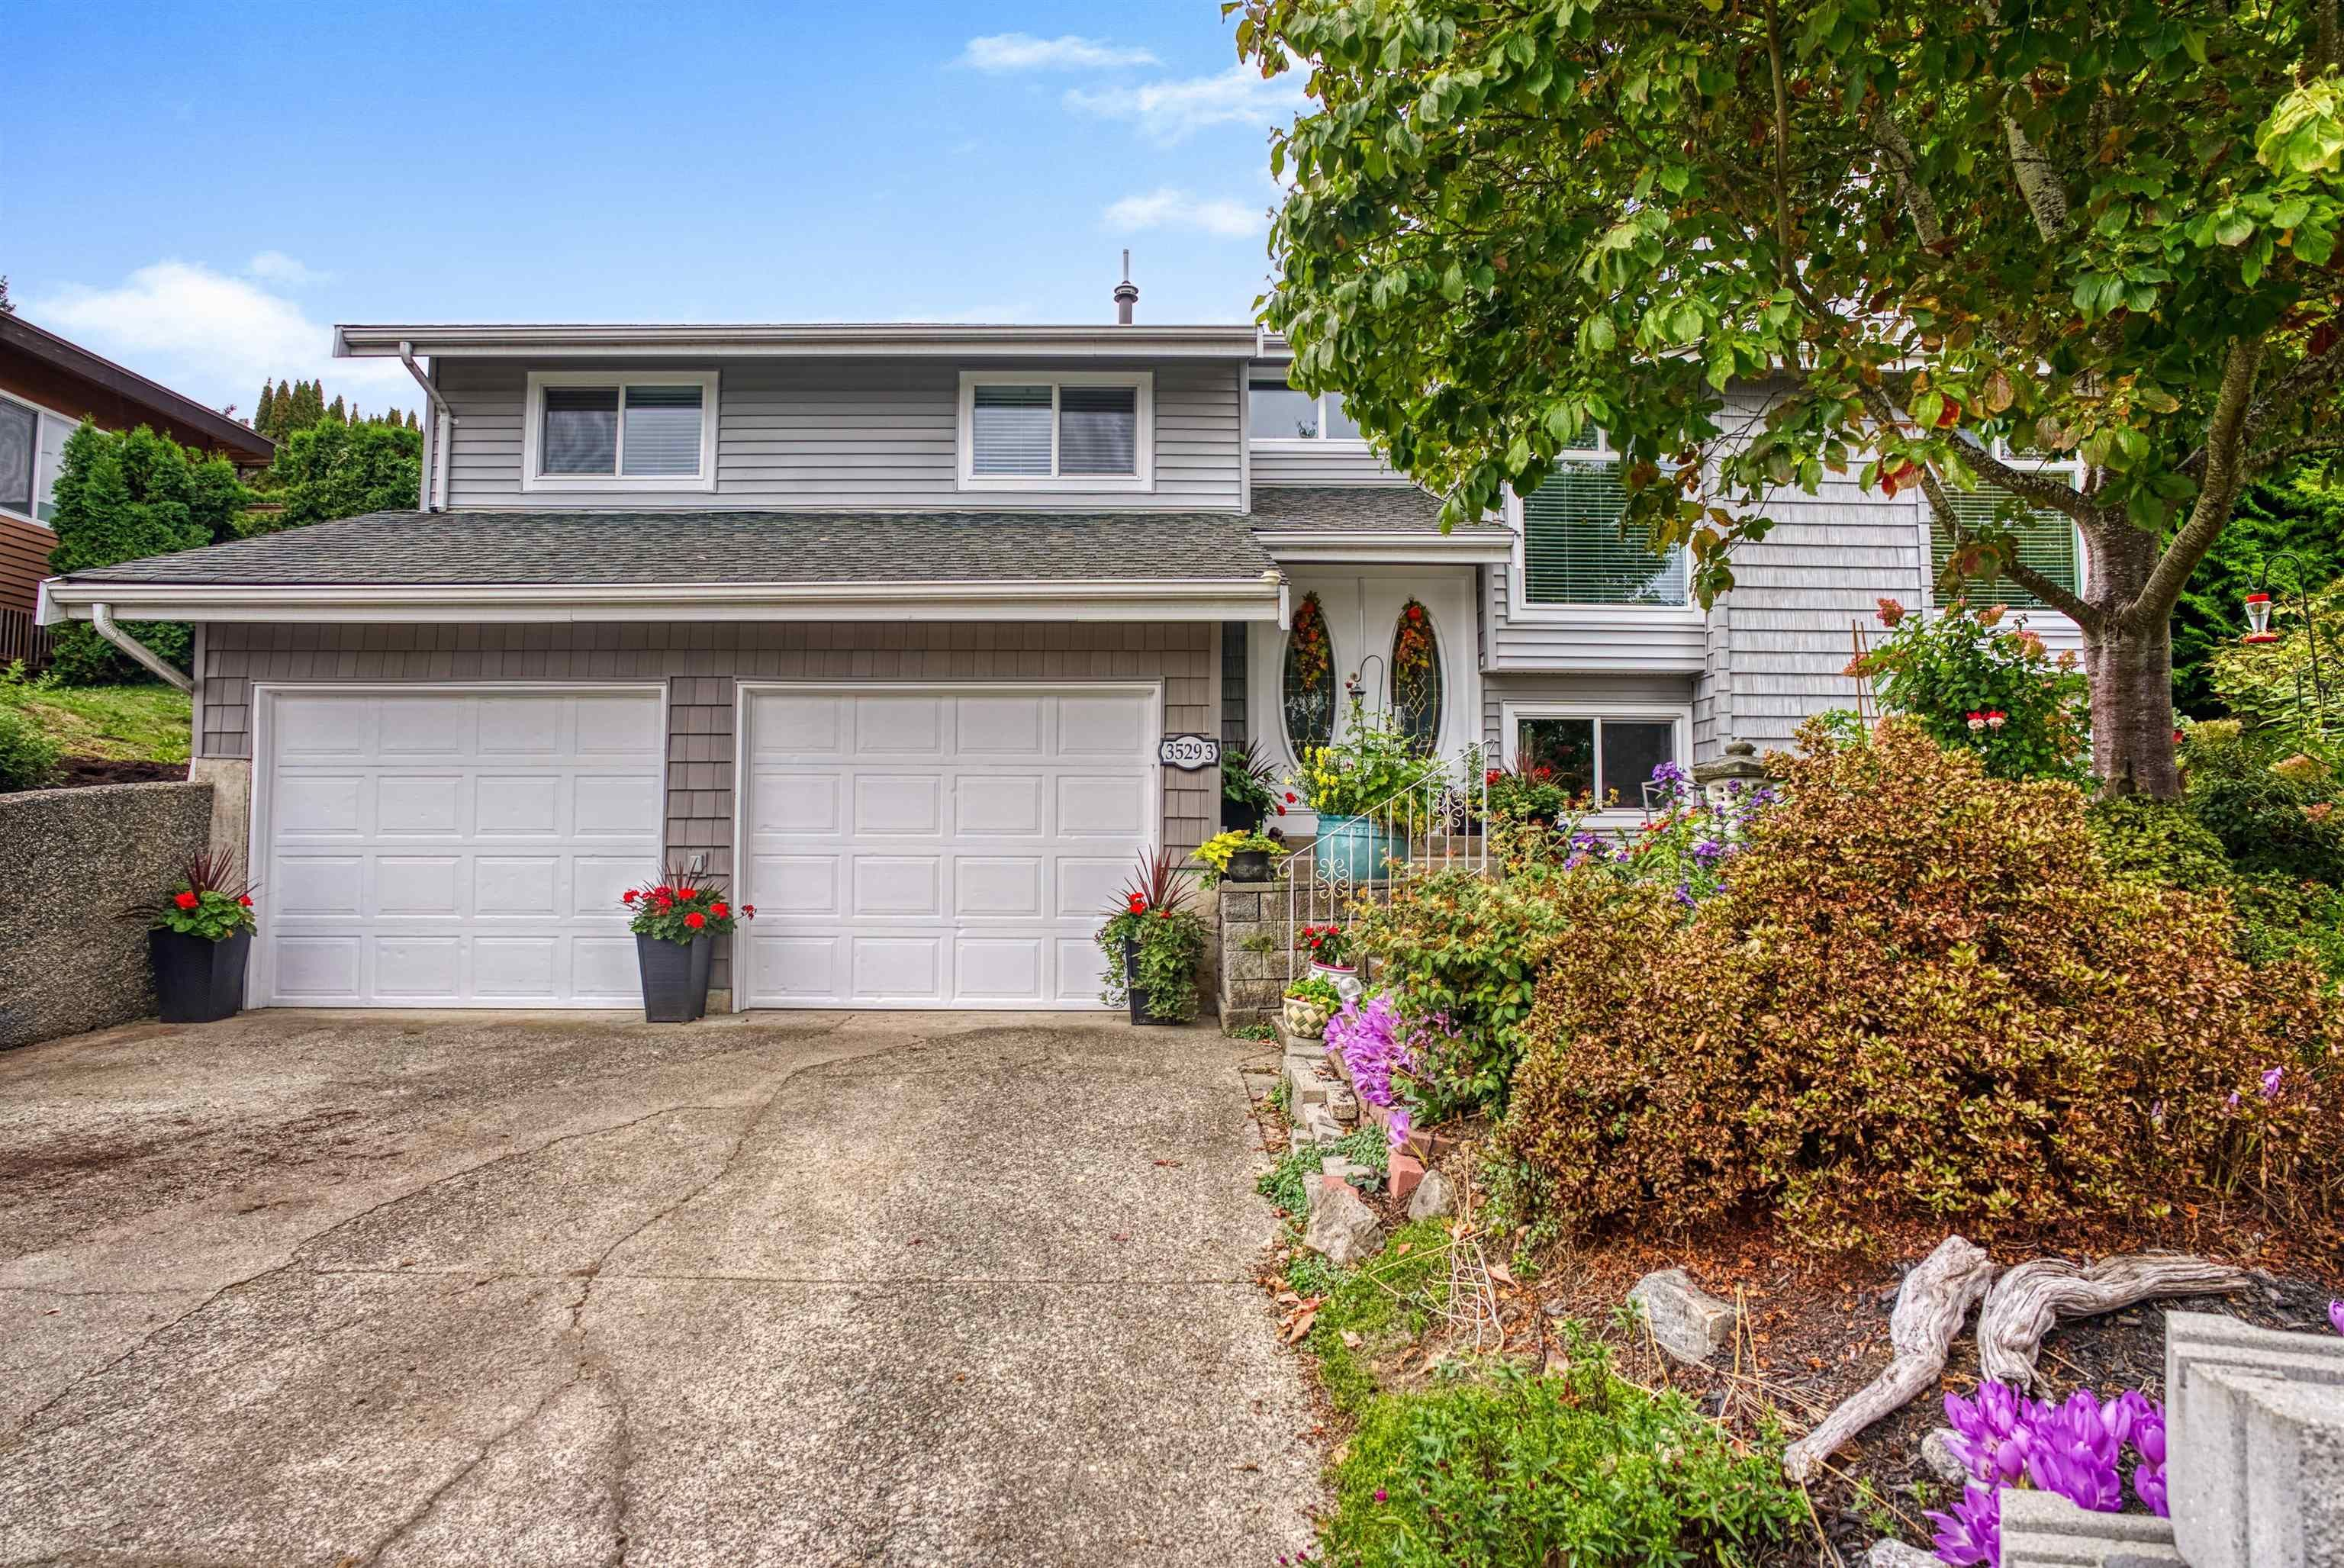 Main Photo: 35293 KNOX Crescent in Abbotsford: Abbotsford East House for sale : MLS®# R2619890